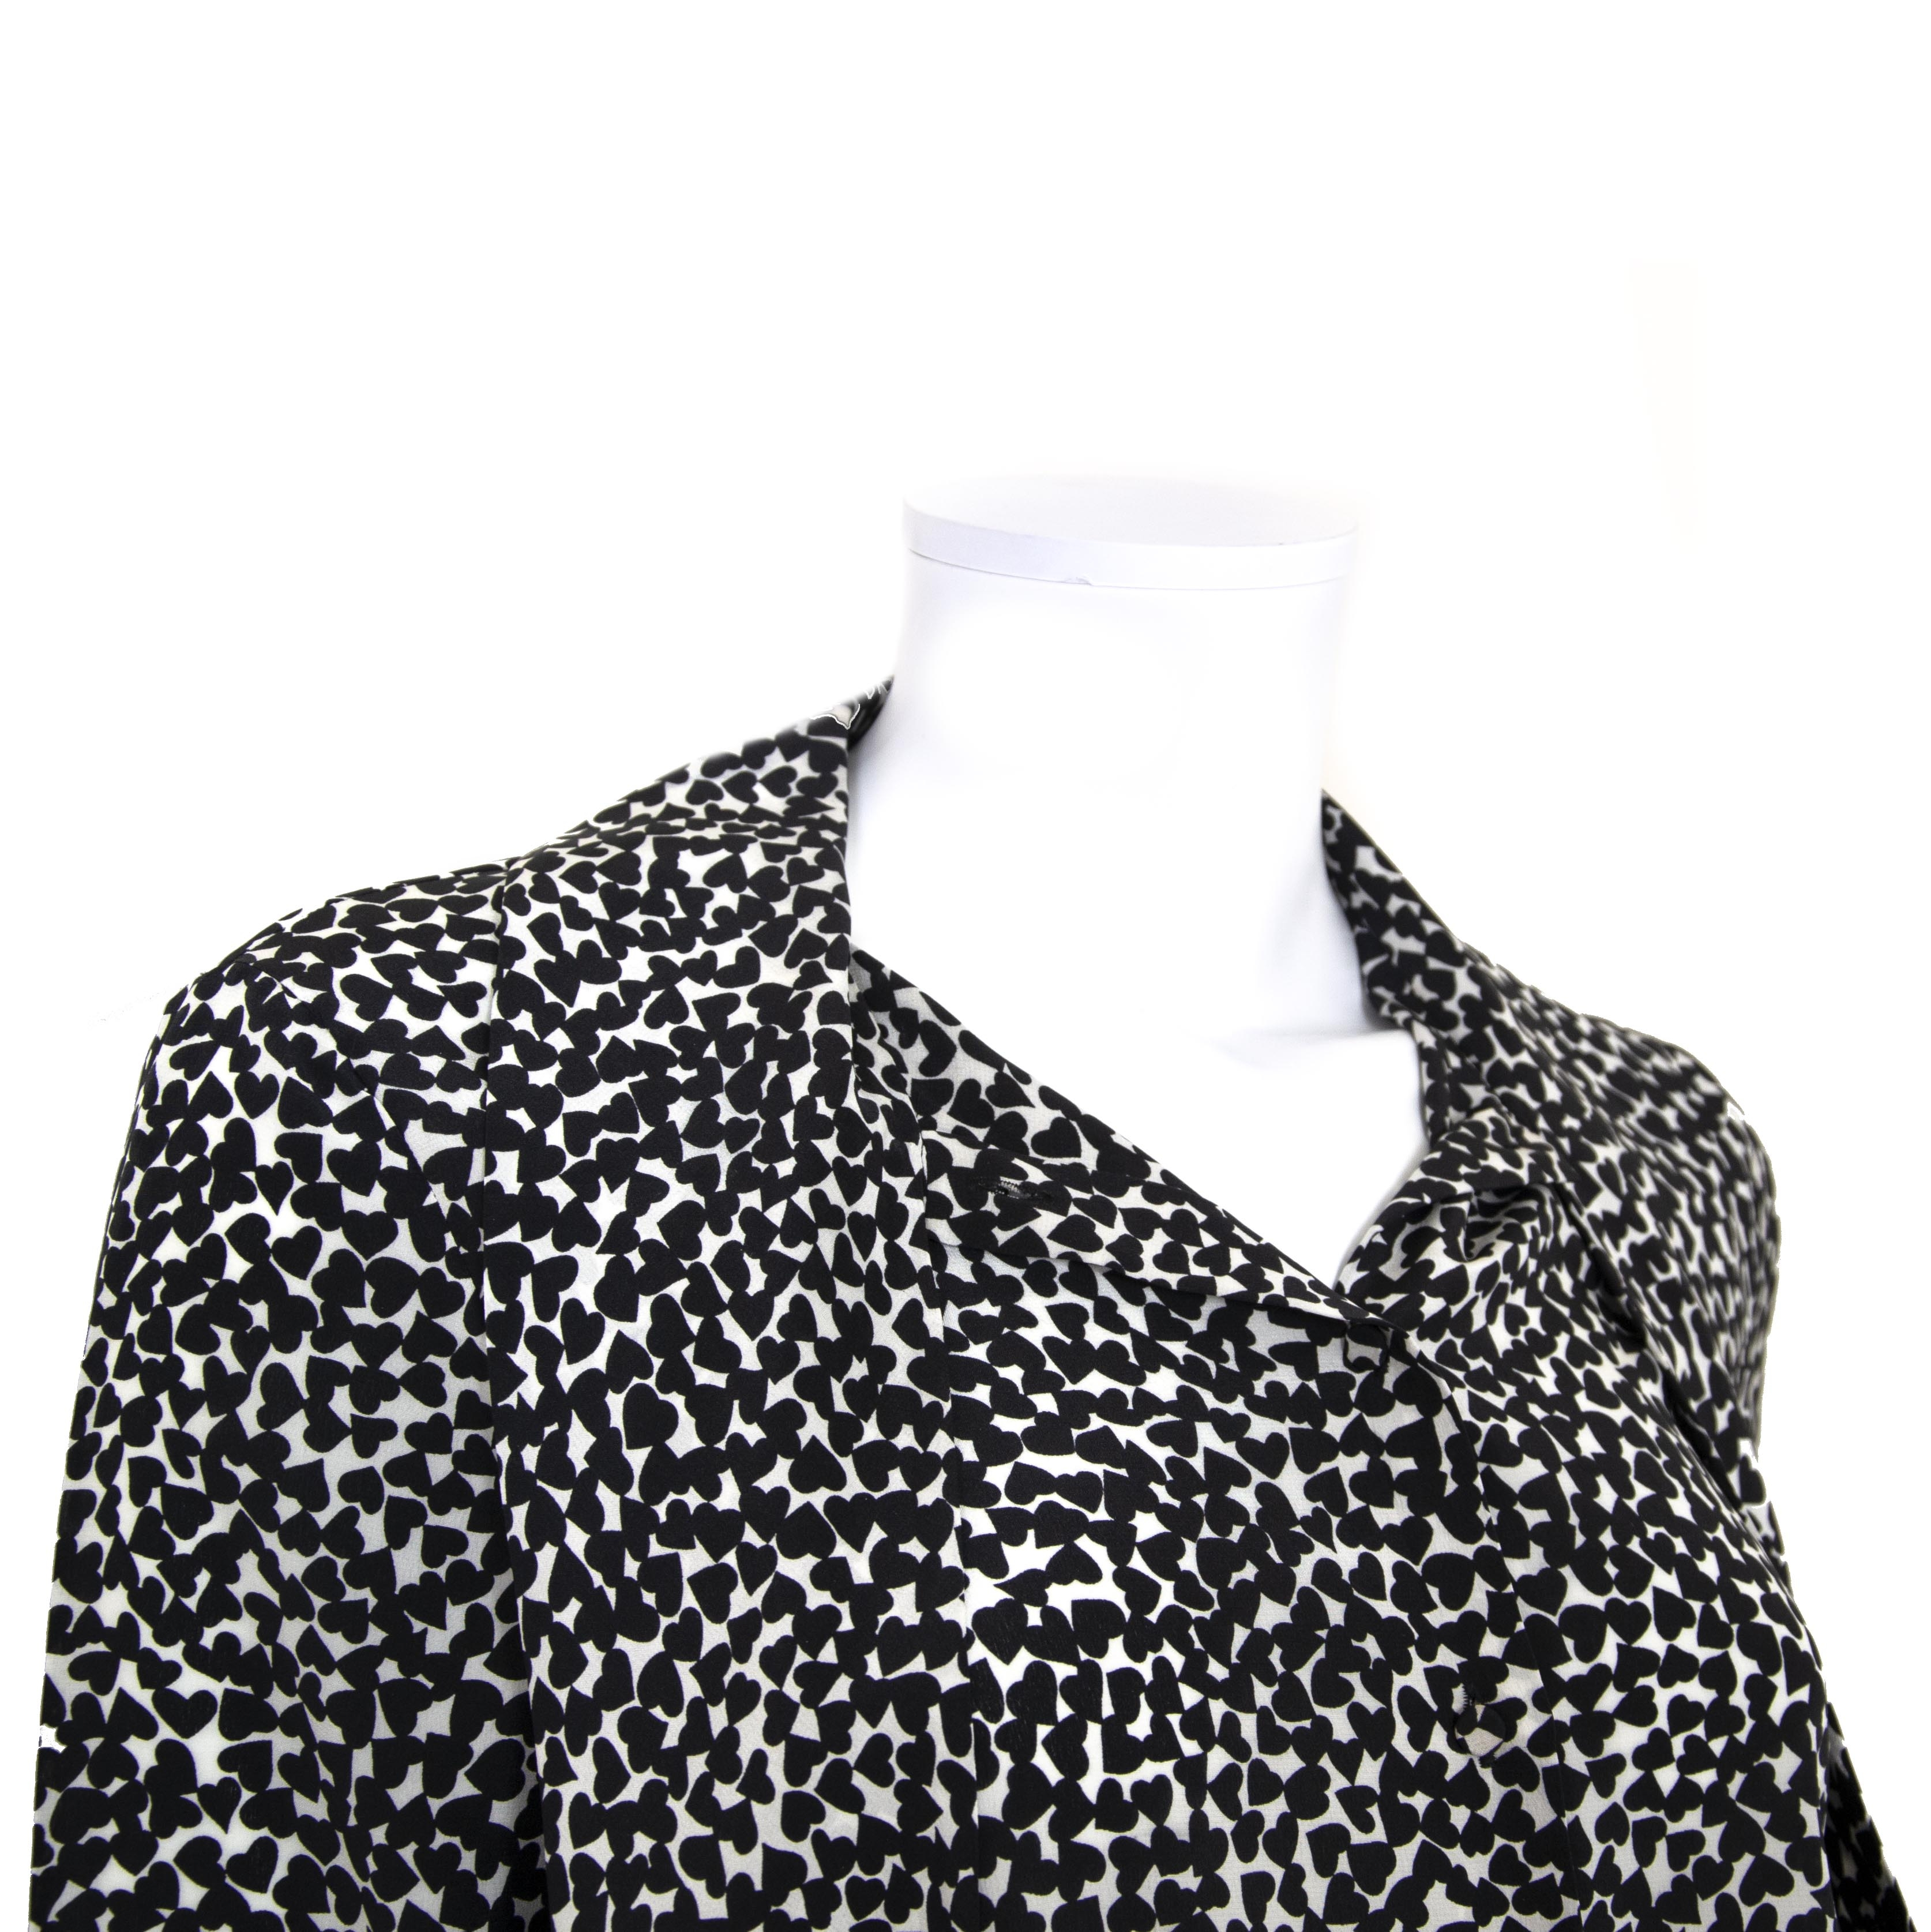 08f9f586f19409 ... buy Saint Laurent Silk Black And White Blouse - Size FR 40 at labellov  for the